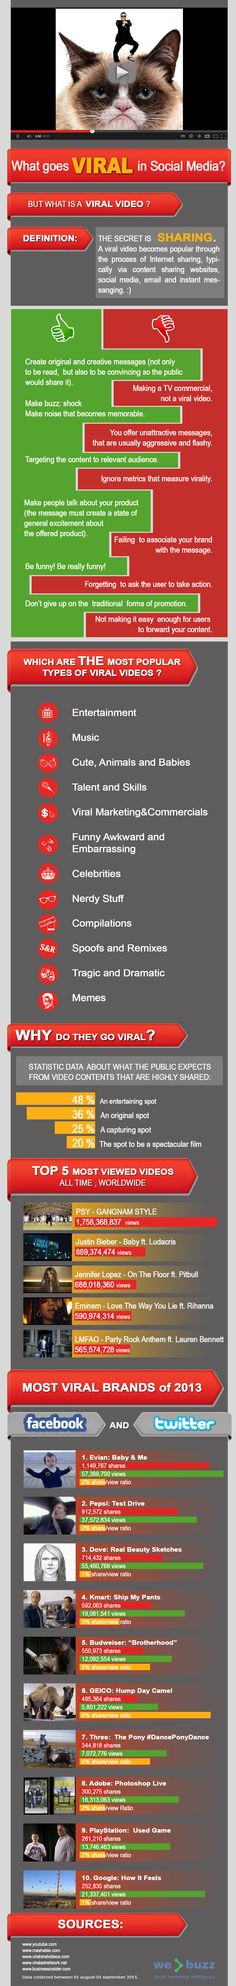 #WhatGoesViral?  Viral effect in the digital environment. #infograhic by #WeBuzz